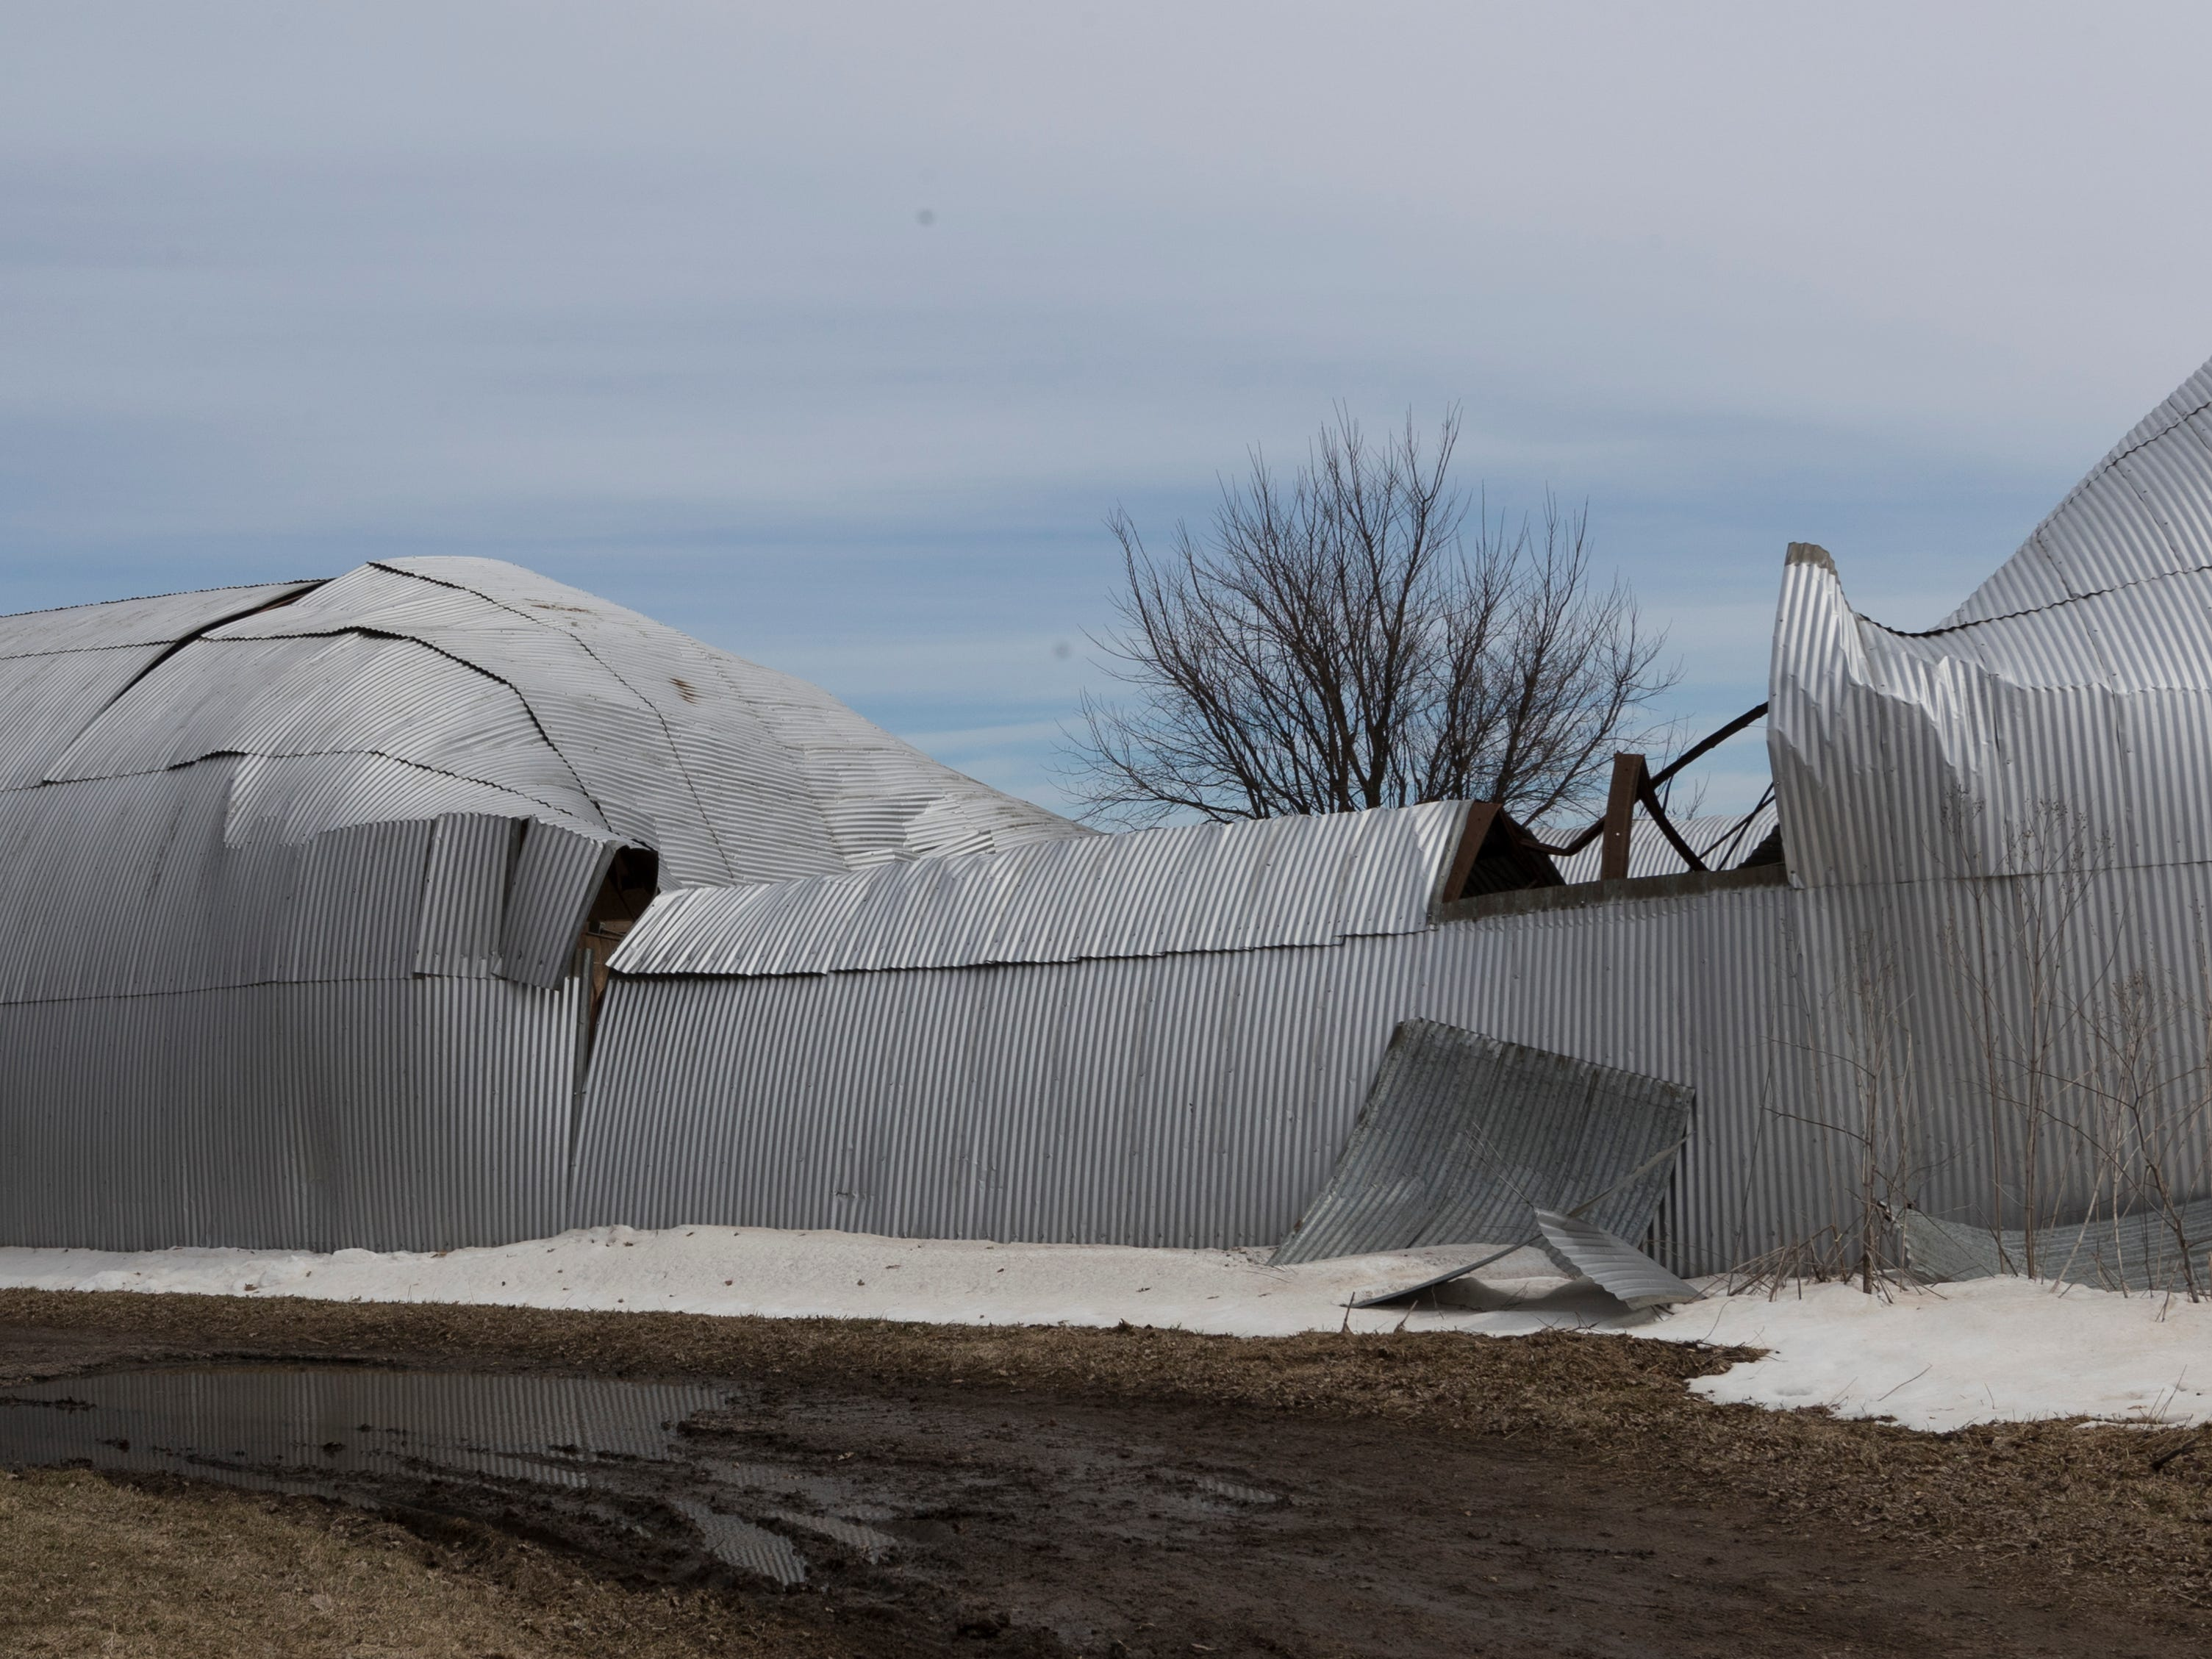 Bruce Drinkman's collapsed machine shed at his farm in Ridgeland.